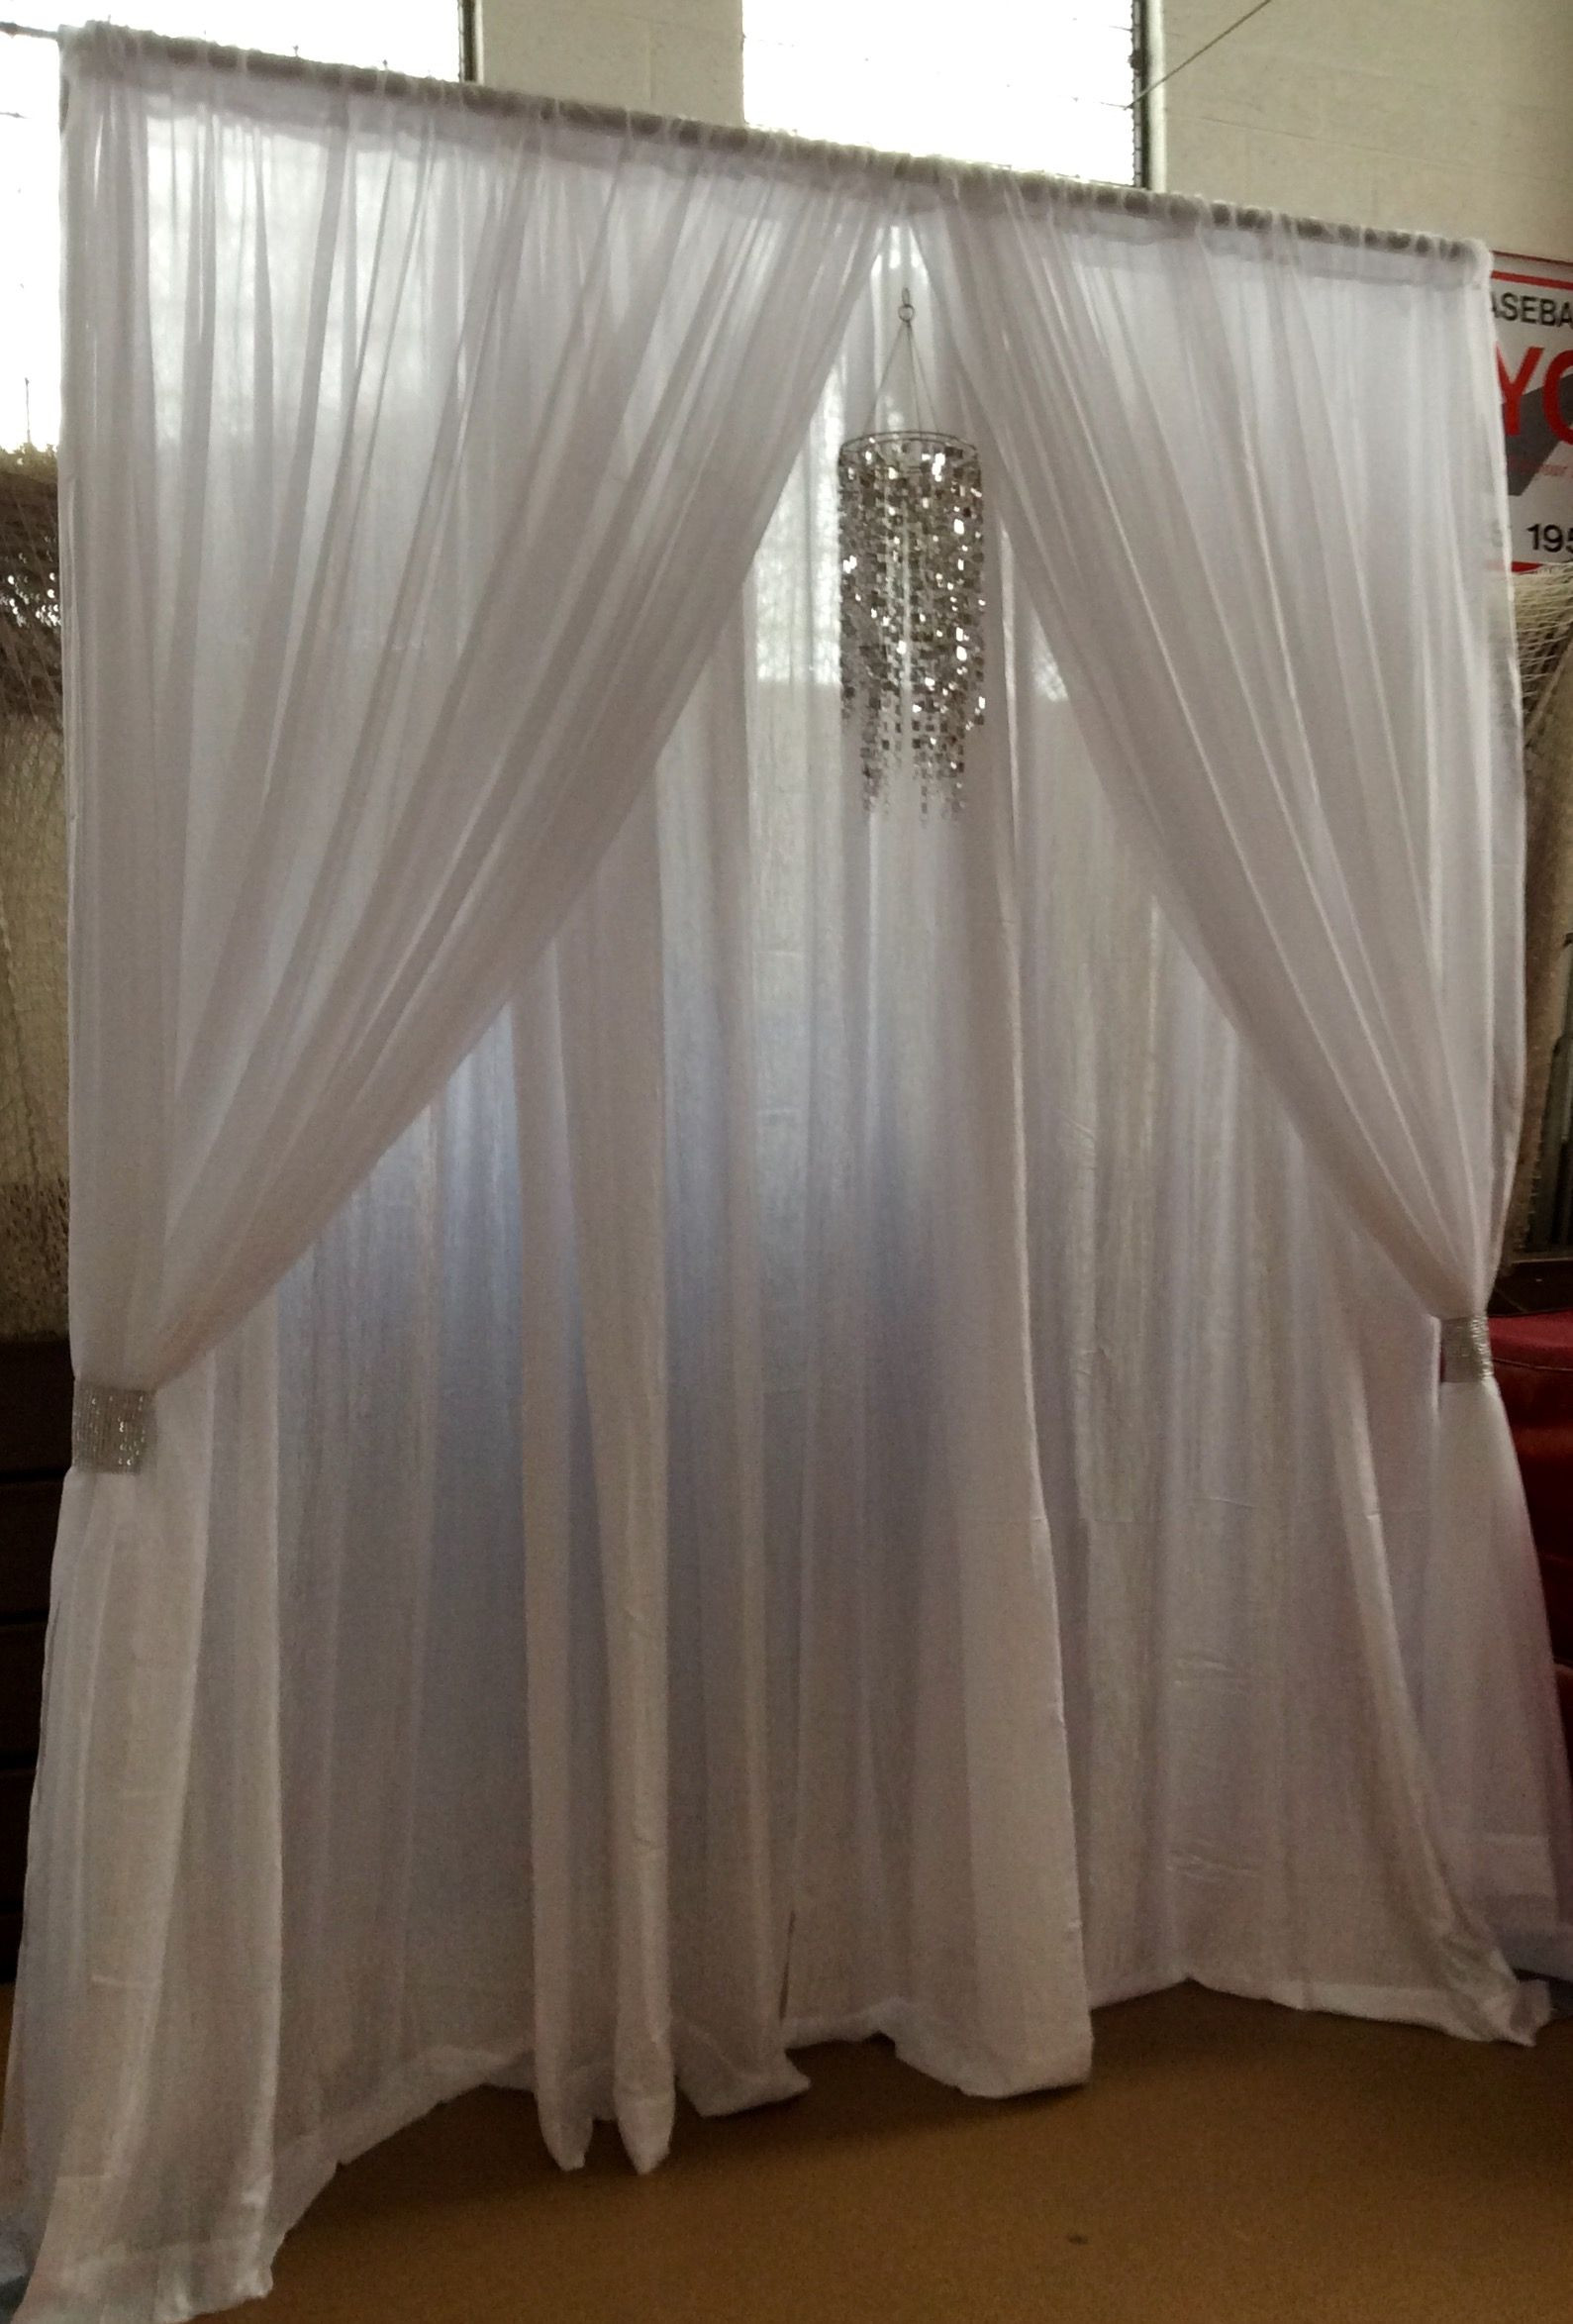 Best ideas about Wedding Drapes DIY . Save or Pin Wedding Event Backdrop Pipe & Drape White Chandelier Now.